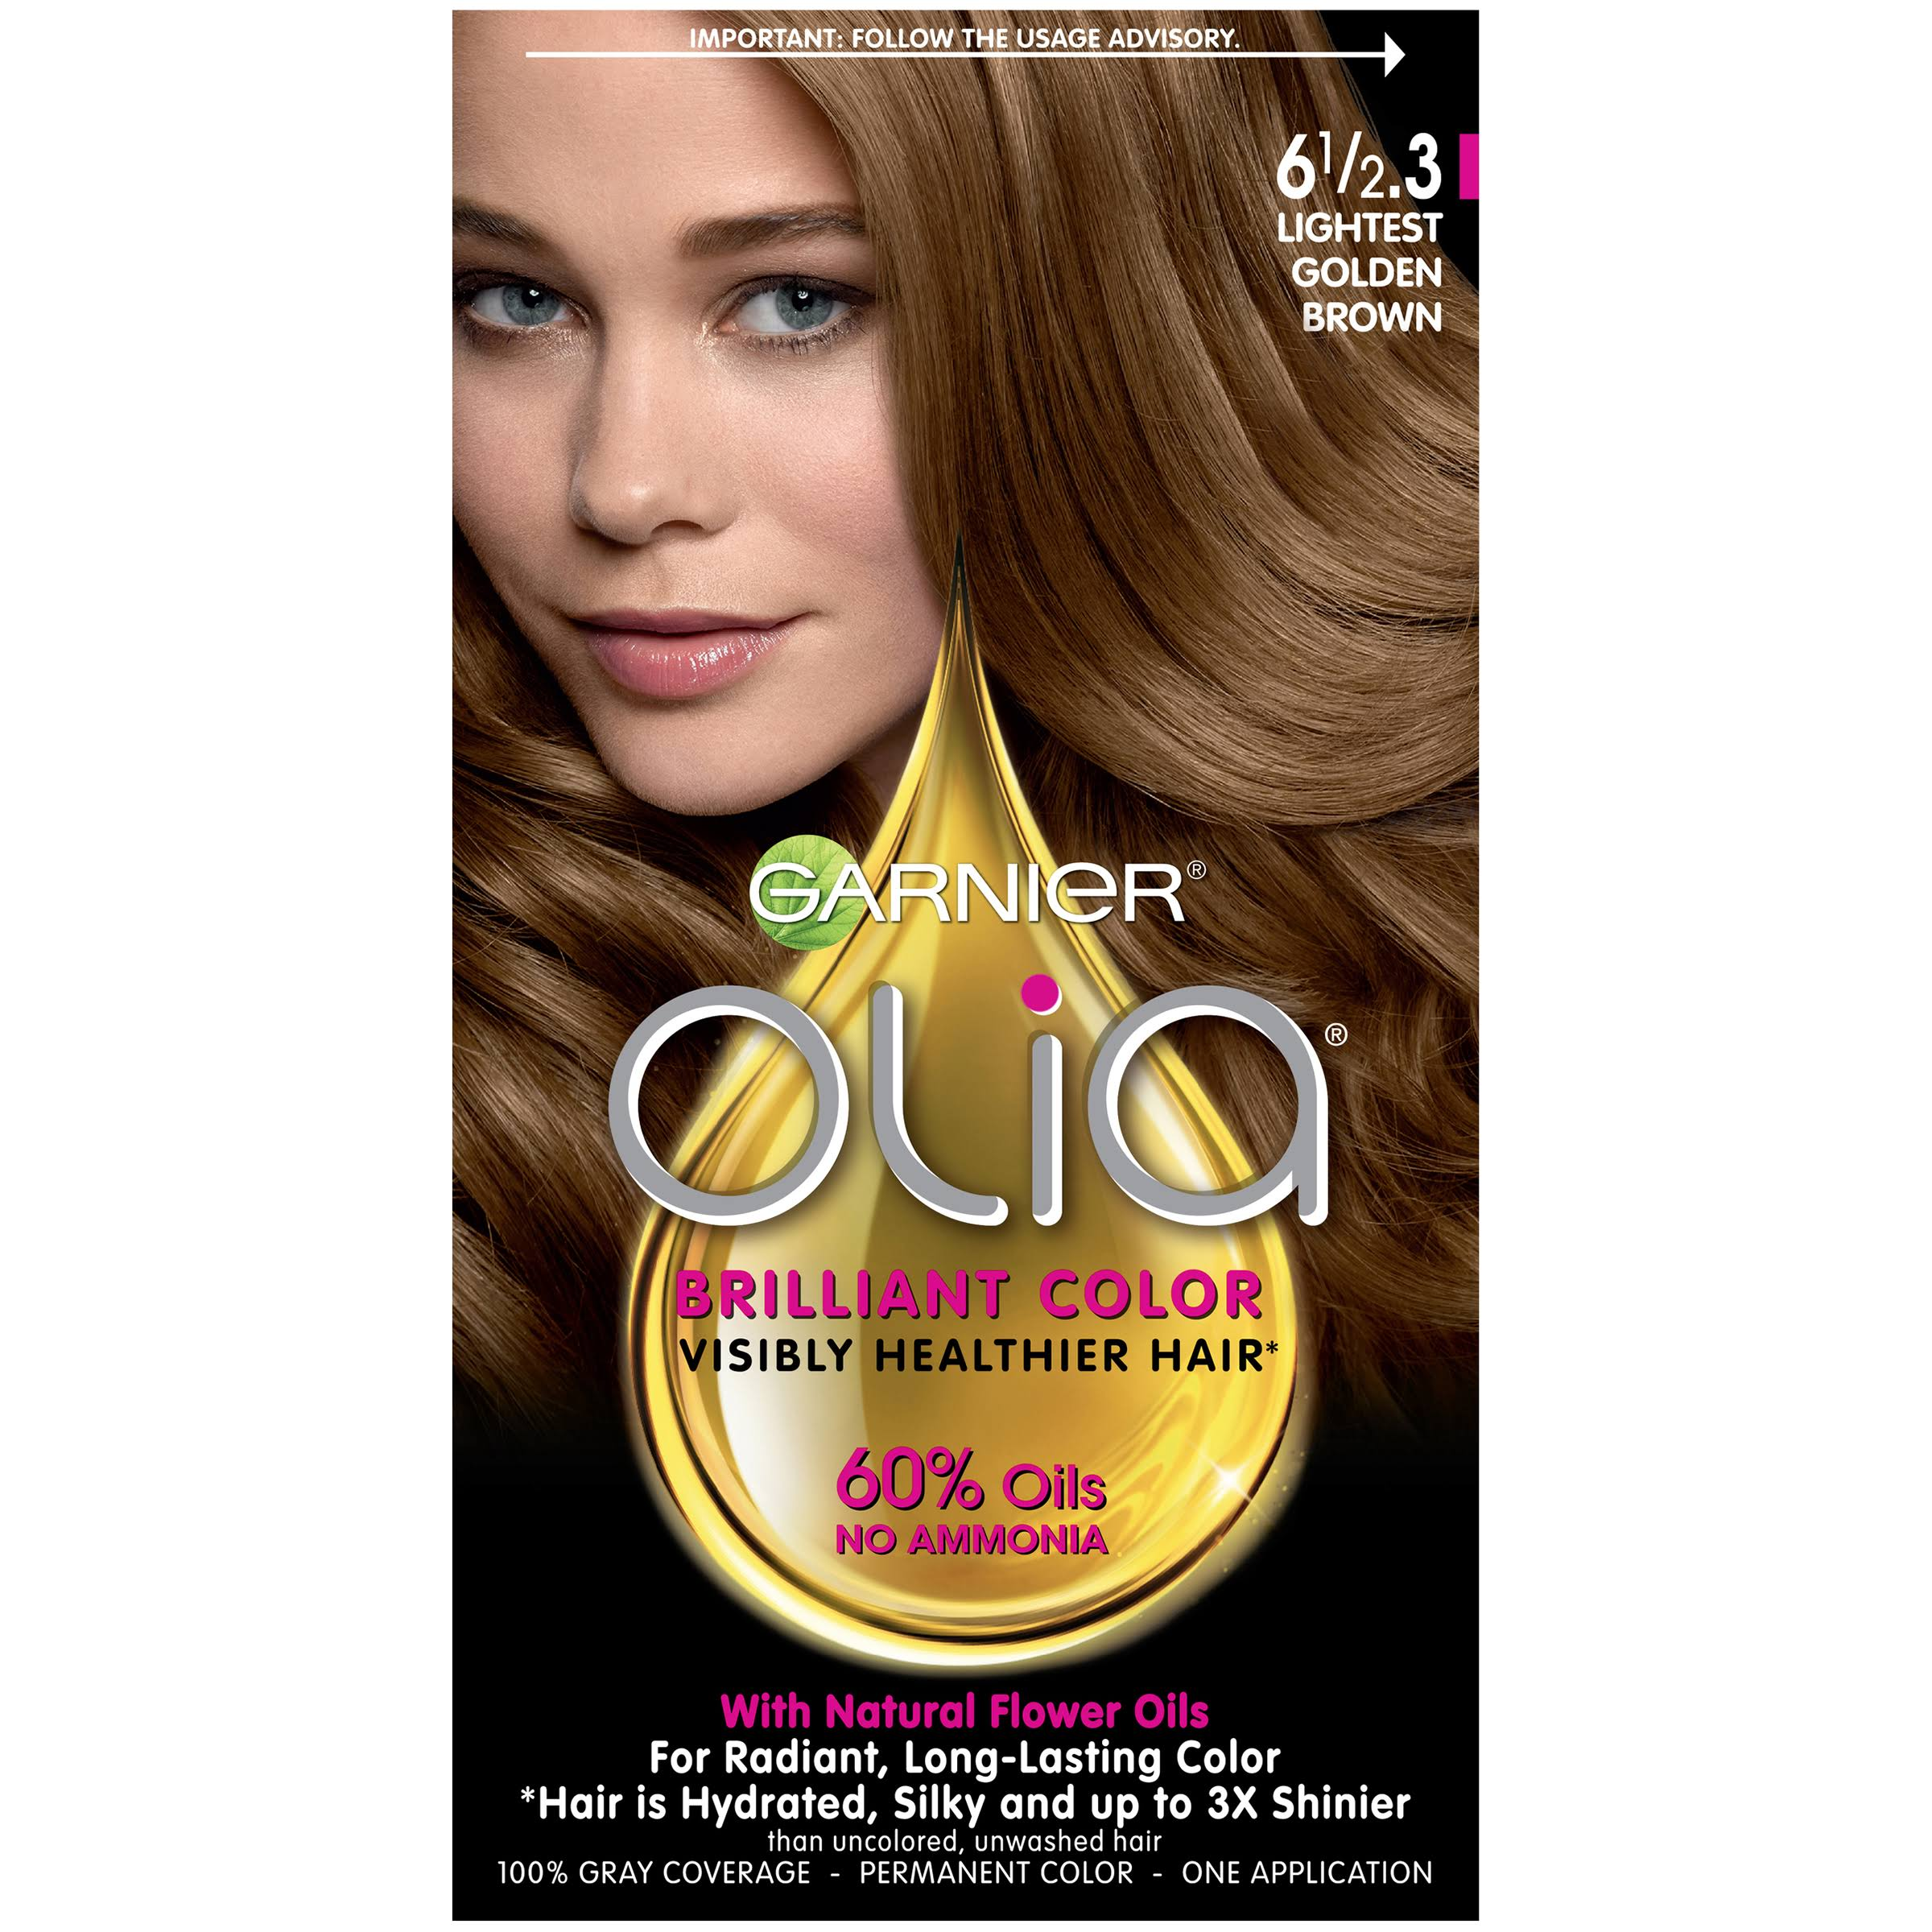 Garnier Olia Oil Permanent Haircolor - 6 1/2.3 Lightest Golden Brown